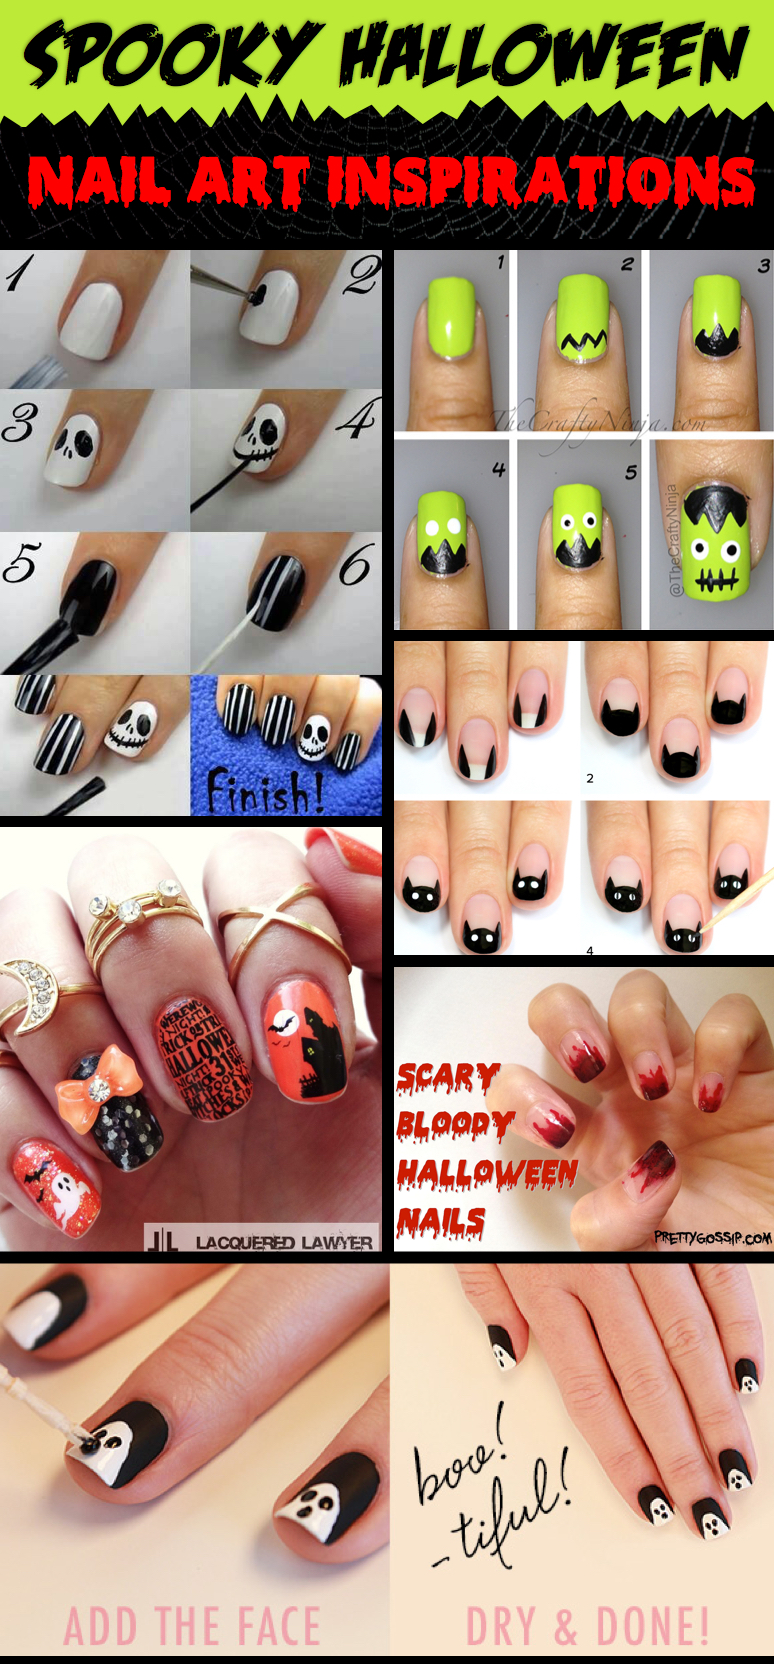 30 Geous And Y Nail Art Inspirations That Will Your Mind